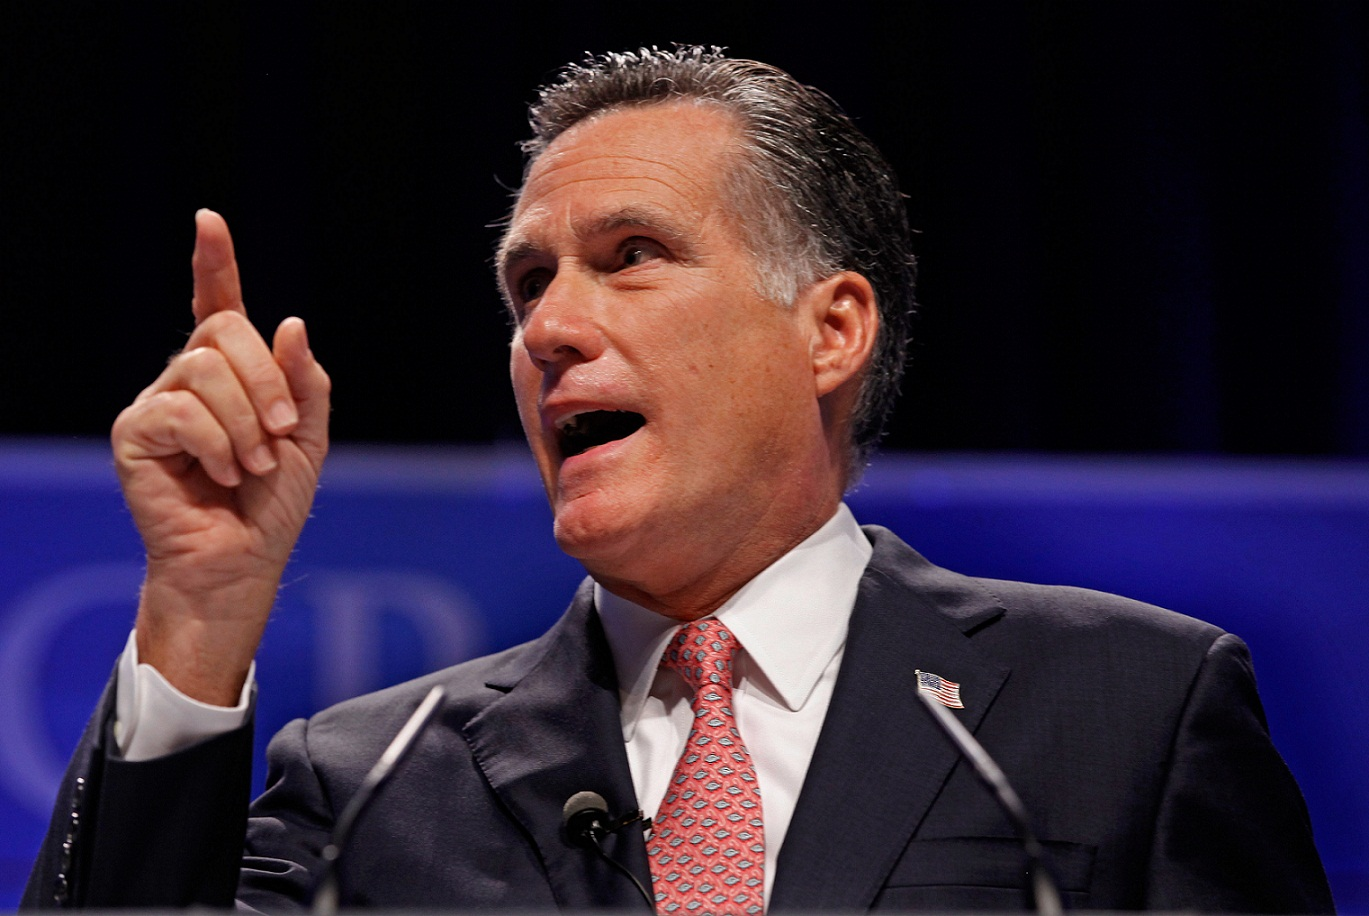 electronic village man from bloomfield hills the mitt man from bloomfield hills the mitt romney story